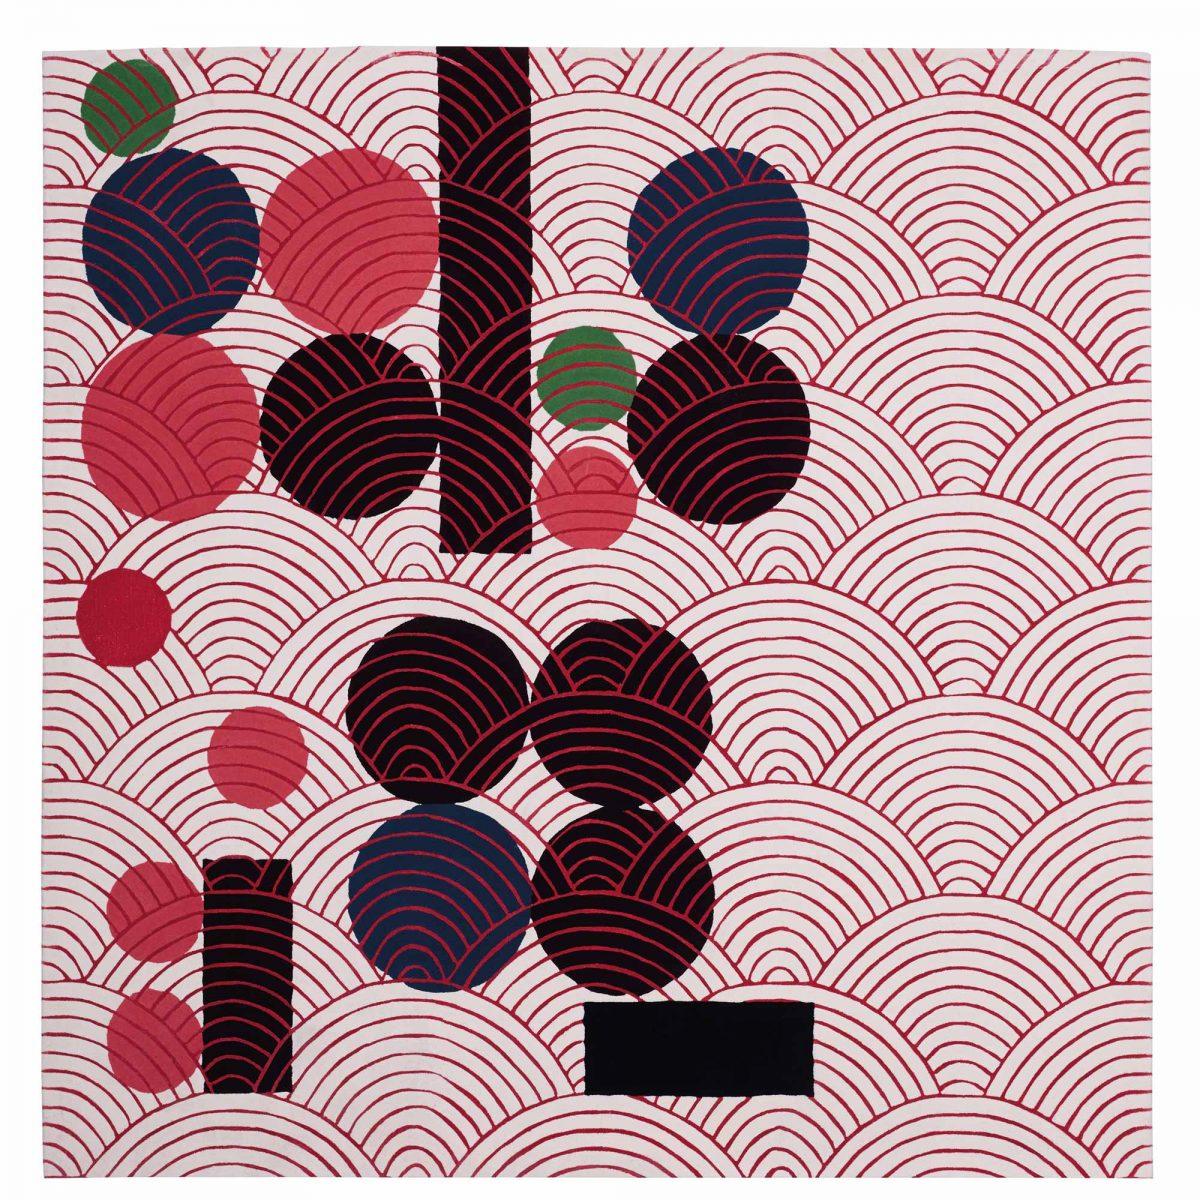 1-japanese-abstractions-03-rugs